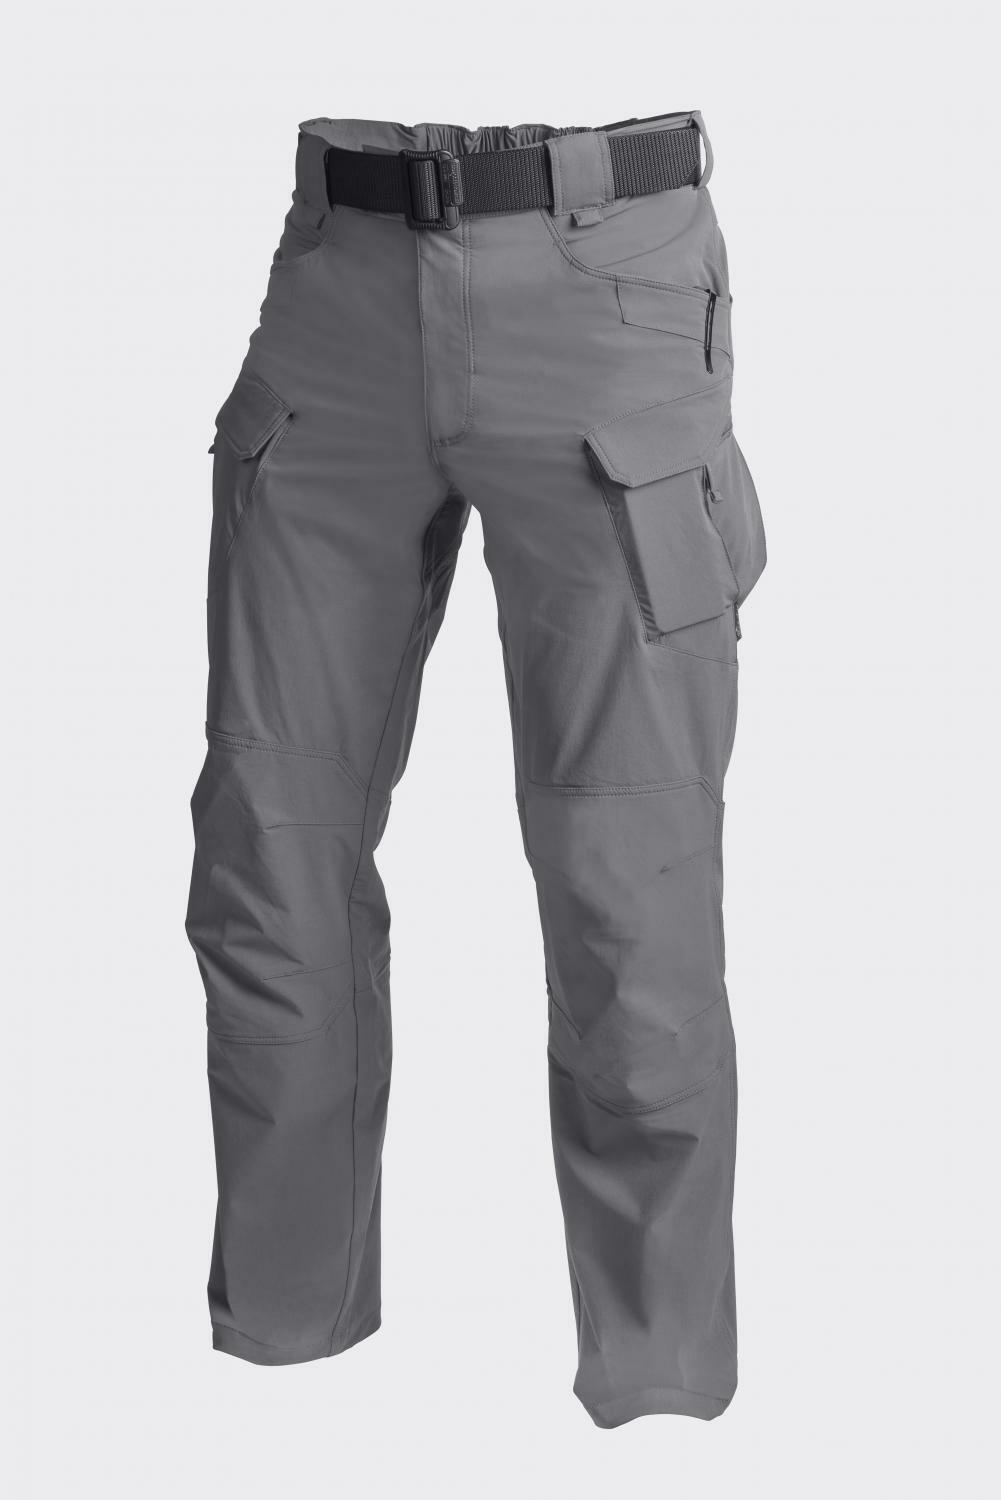 Helikon Tex Otp Tactical Outdoor Trekking Pantaloni Shadow gris Large Long